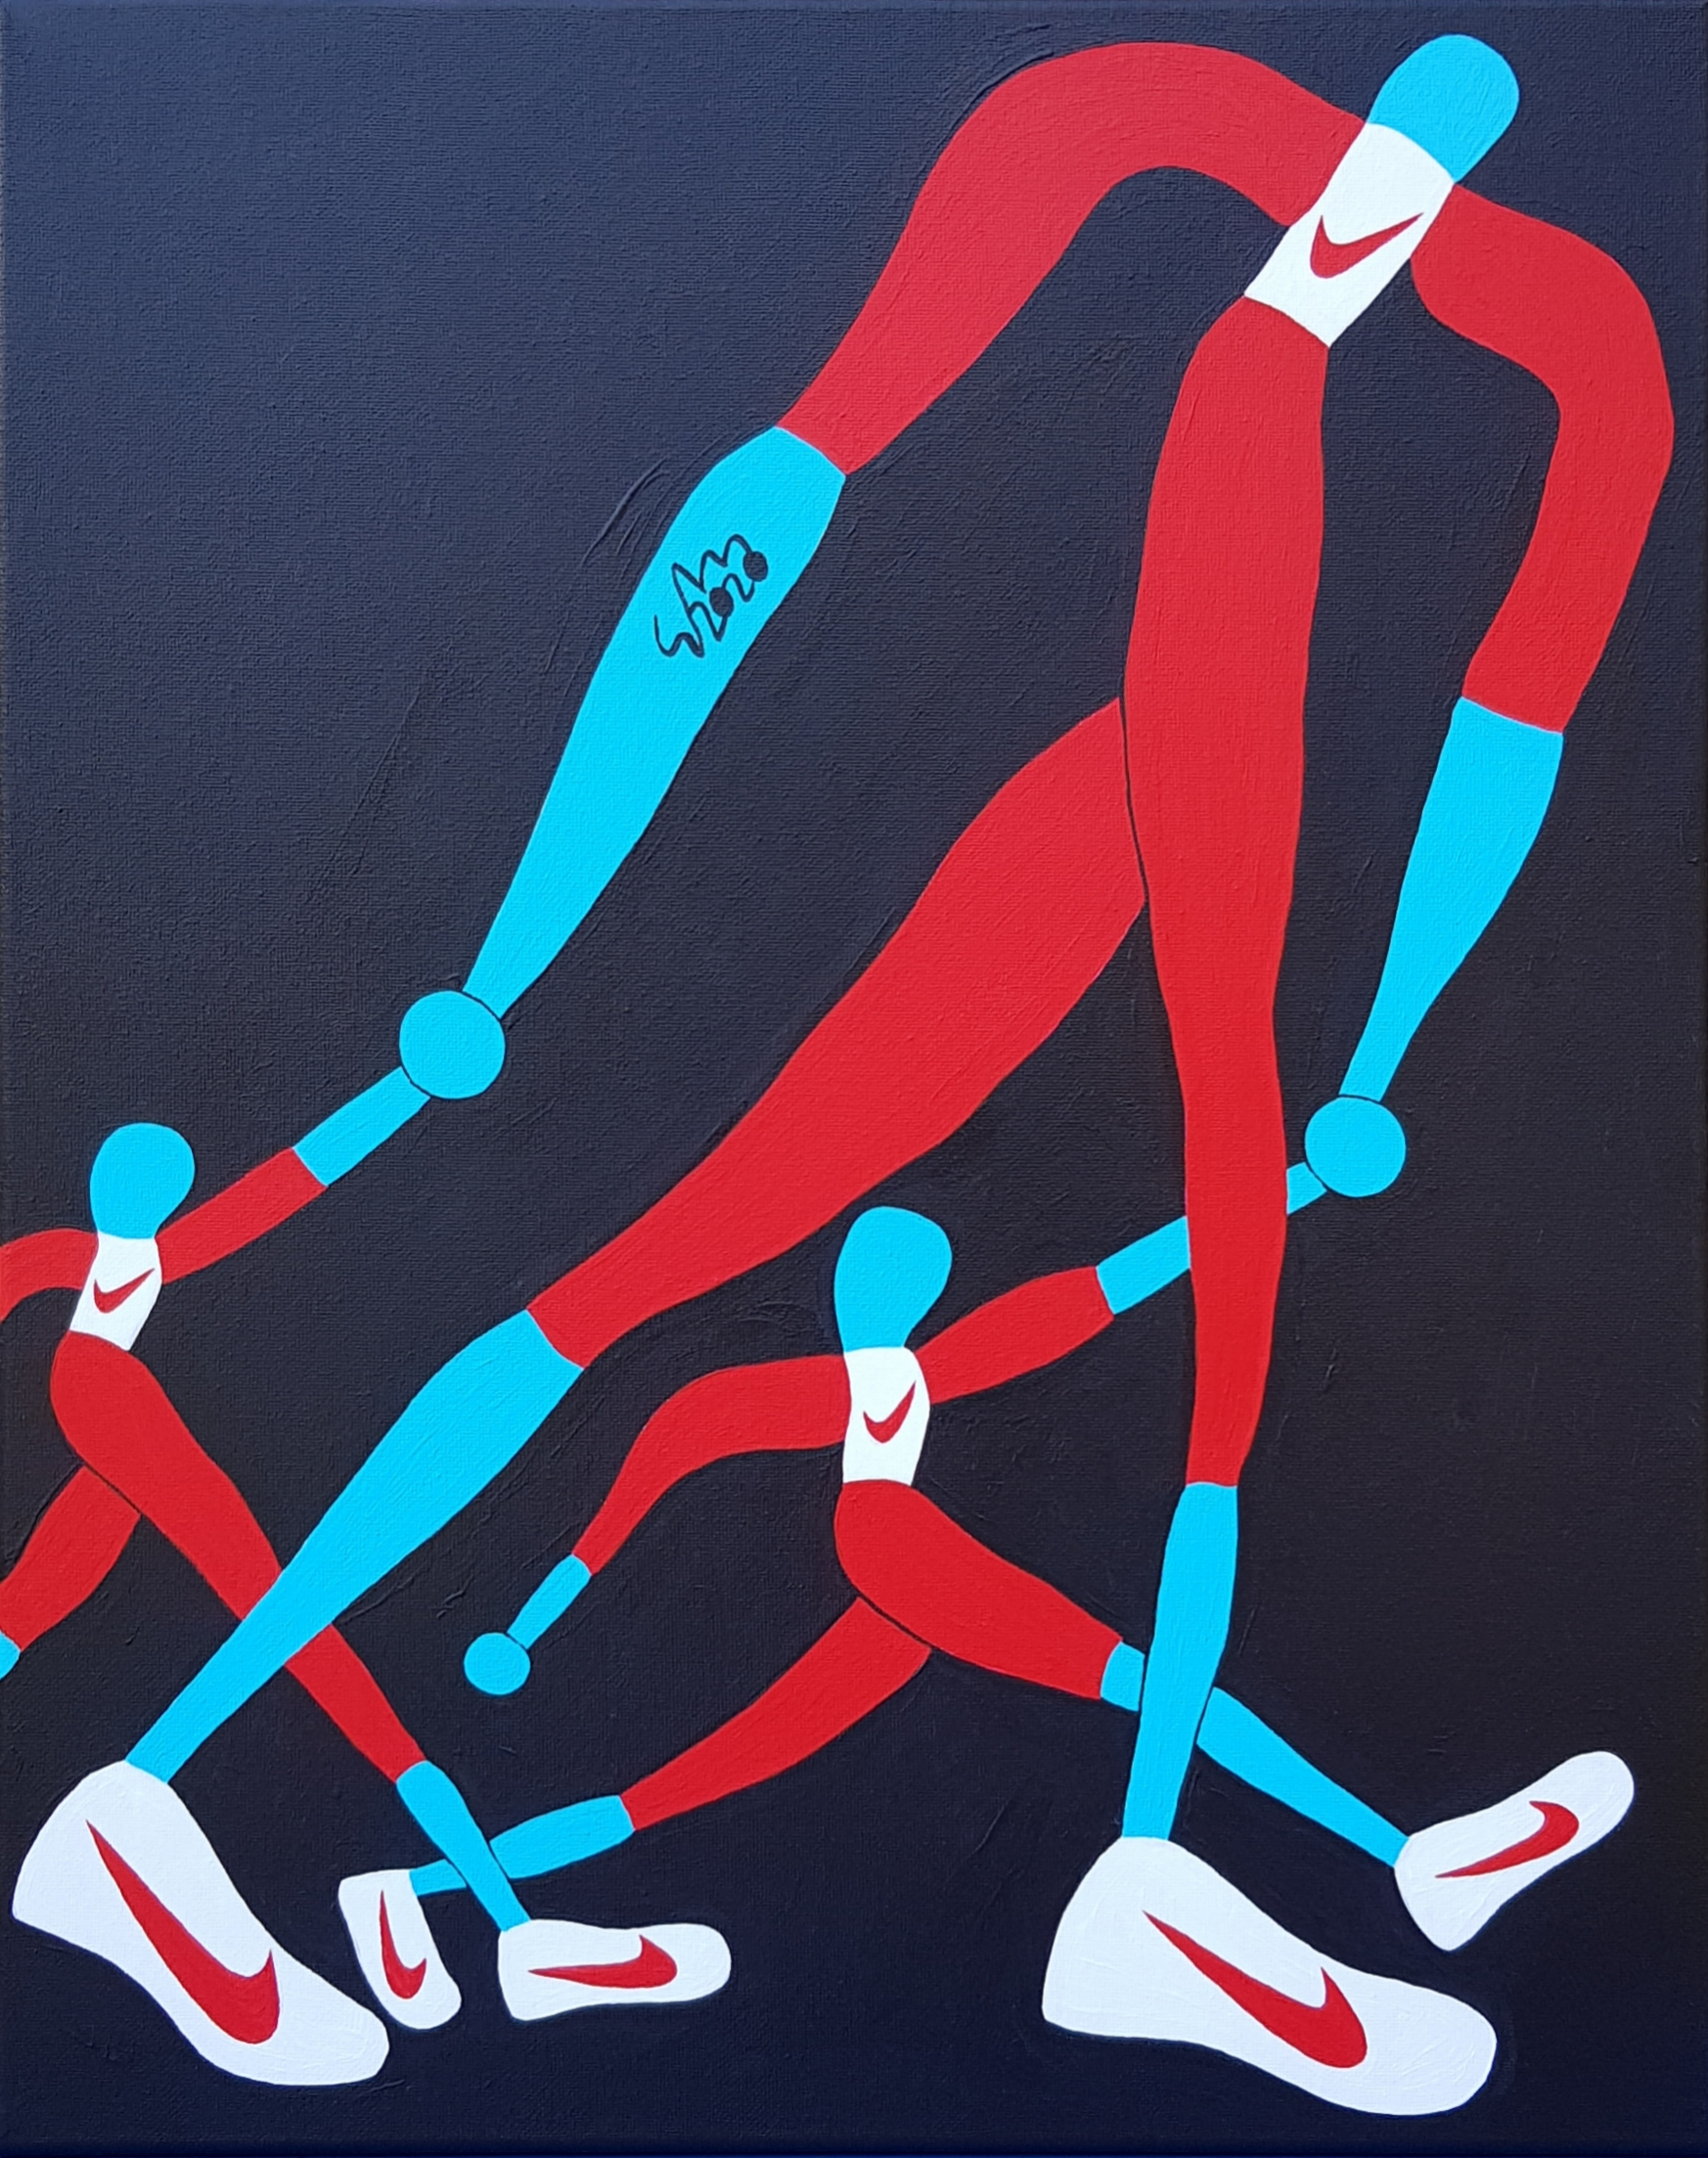 Mr. Nike Taking Children To A Sporting Event 2020 Acrylic On Canvas 40.6cm X 50.8cm X 1.5cm